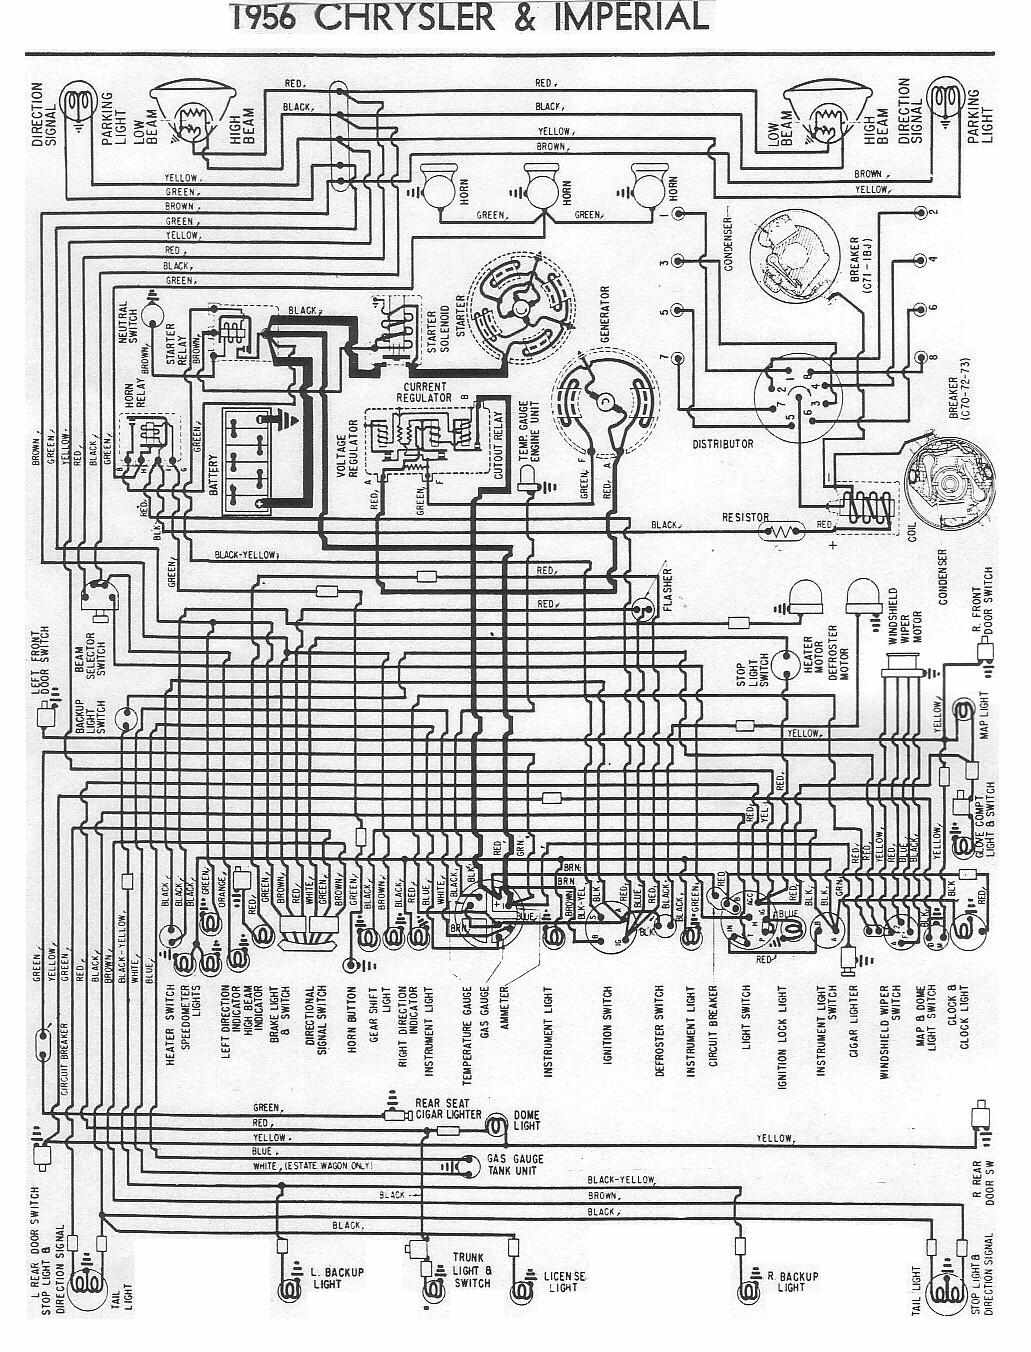 1968 Coronet Wiring Diagram Enthusiast Diagrams Omc Ignition Chrysler House Symbols U2022 Rh Maxturner Co 1969